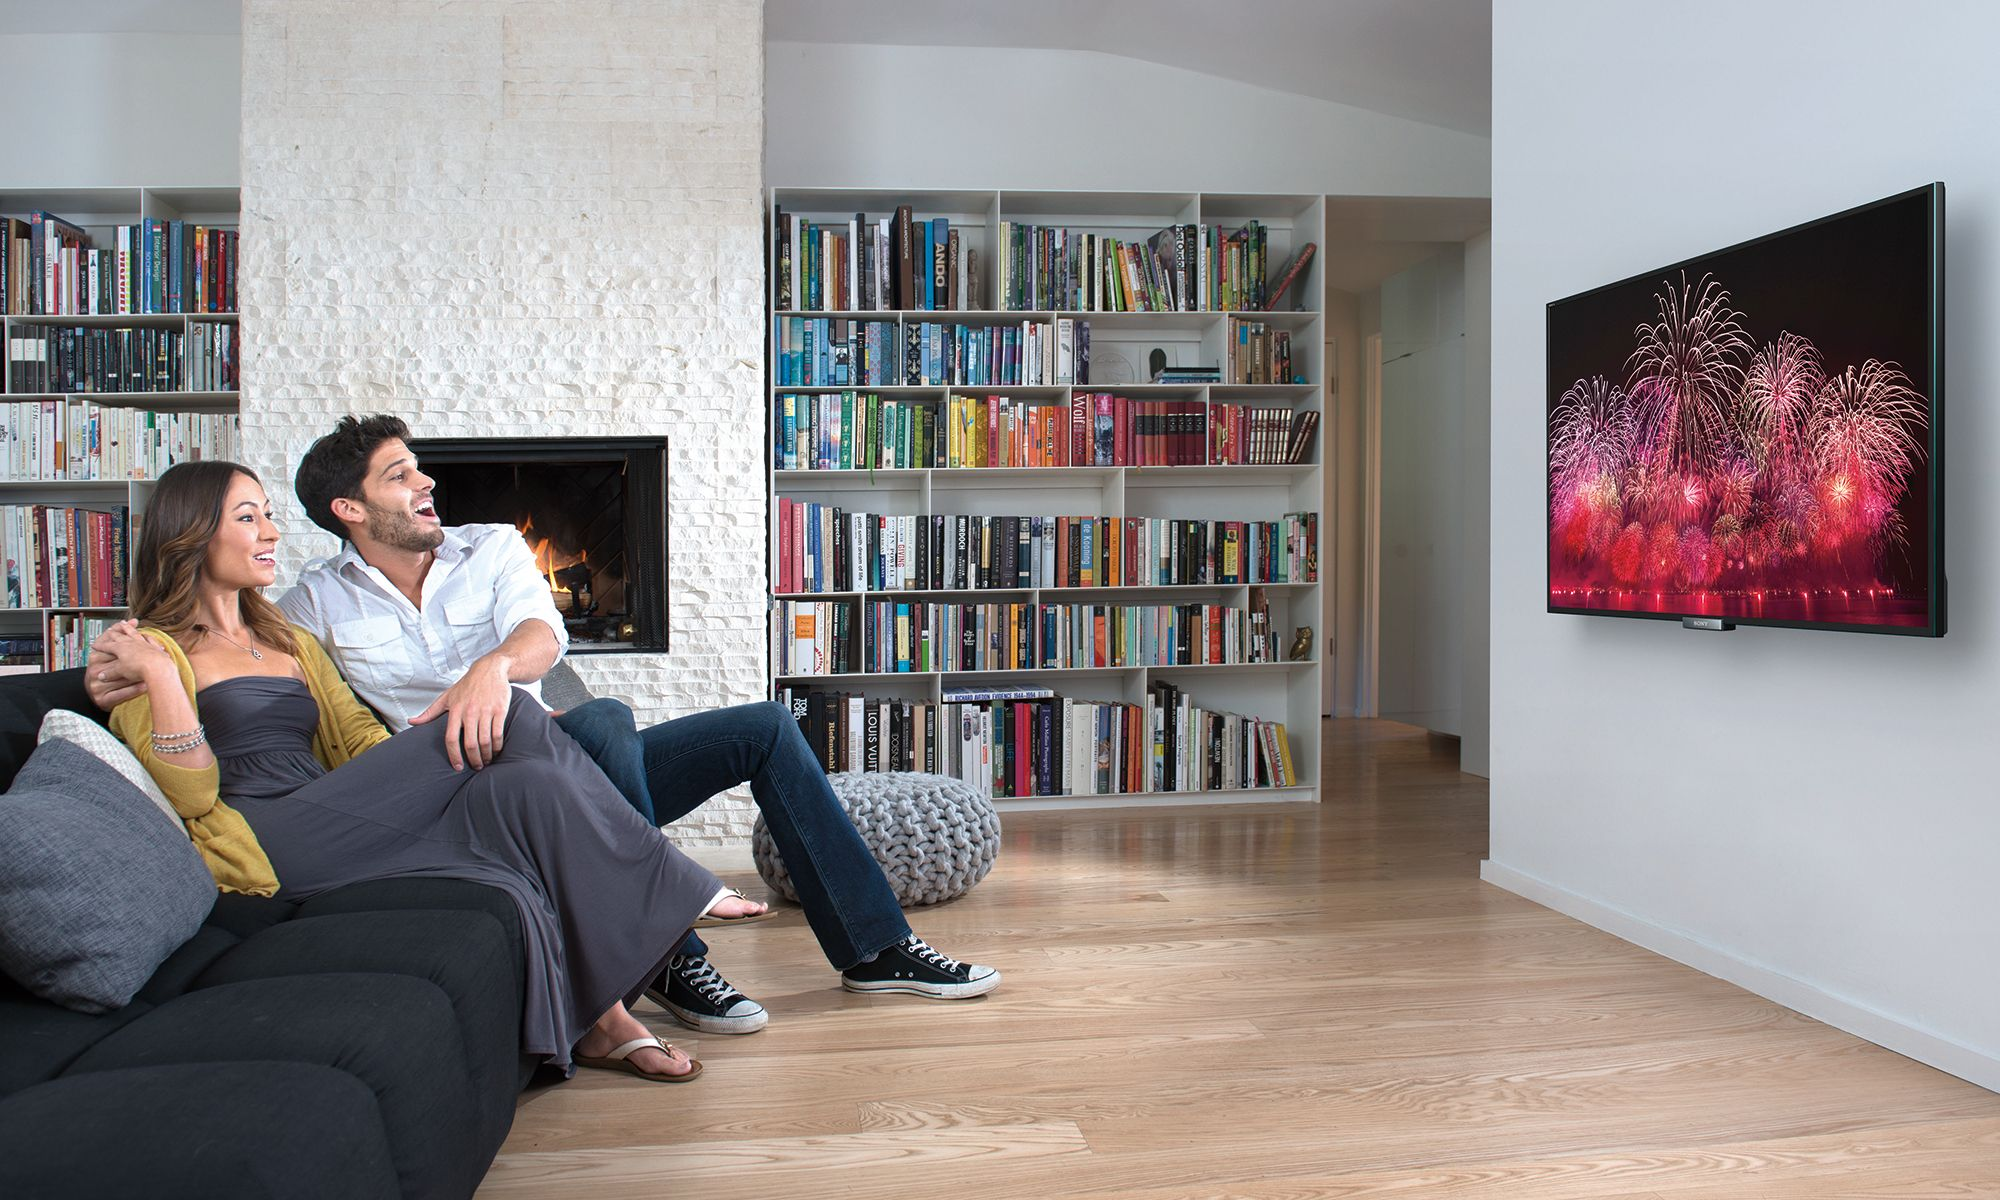 Tv Buying Guide What To Look For When Buying A Tv In 2019 Tom S Guide Tv Buying Guide Small Media Rooms Tv In Bedroom